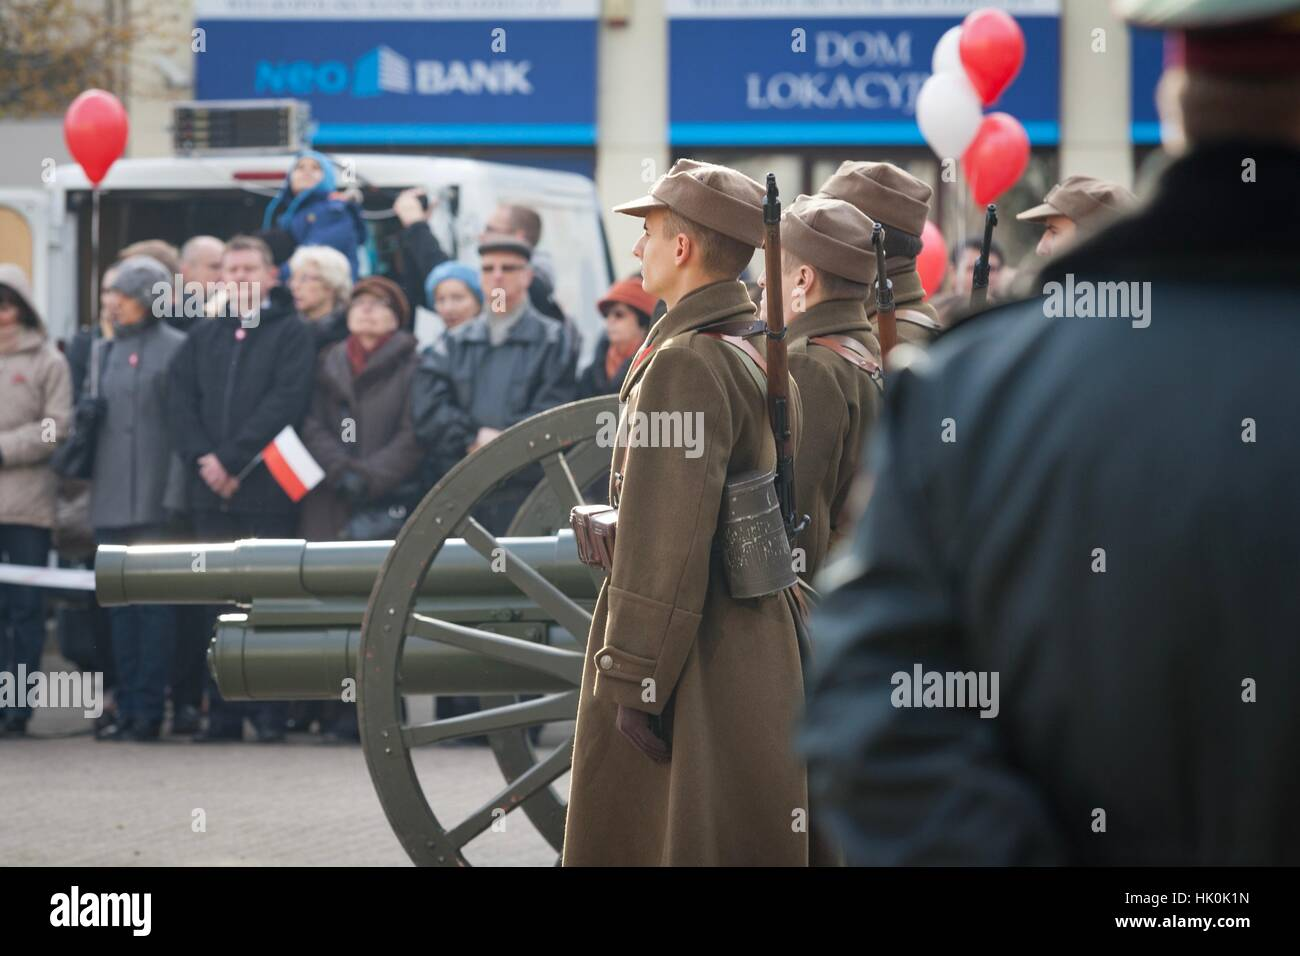 Poznan, Poland - November 11, 2012 Independence Day, a national holiday in Poland. Established in 1937 and restored - Stock Image